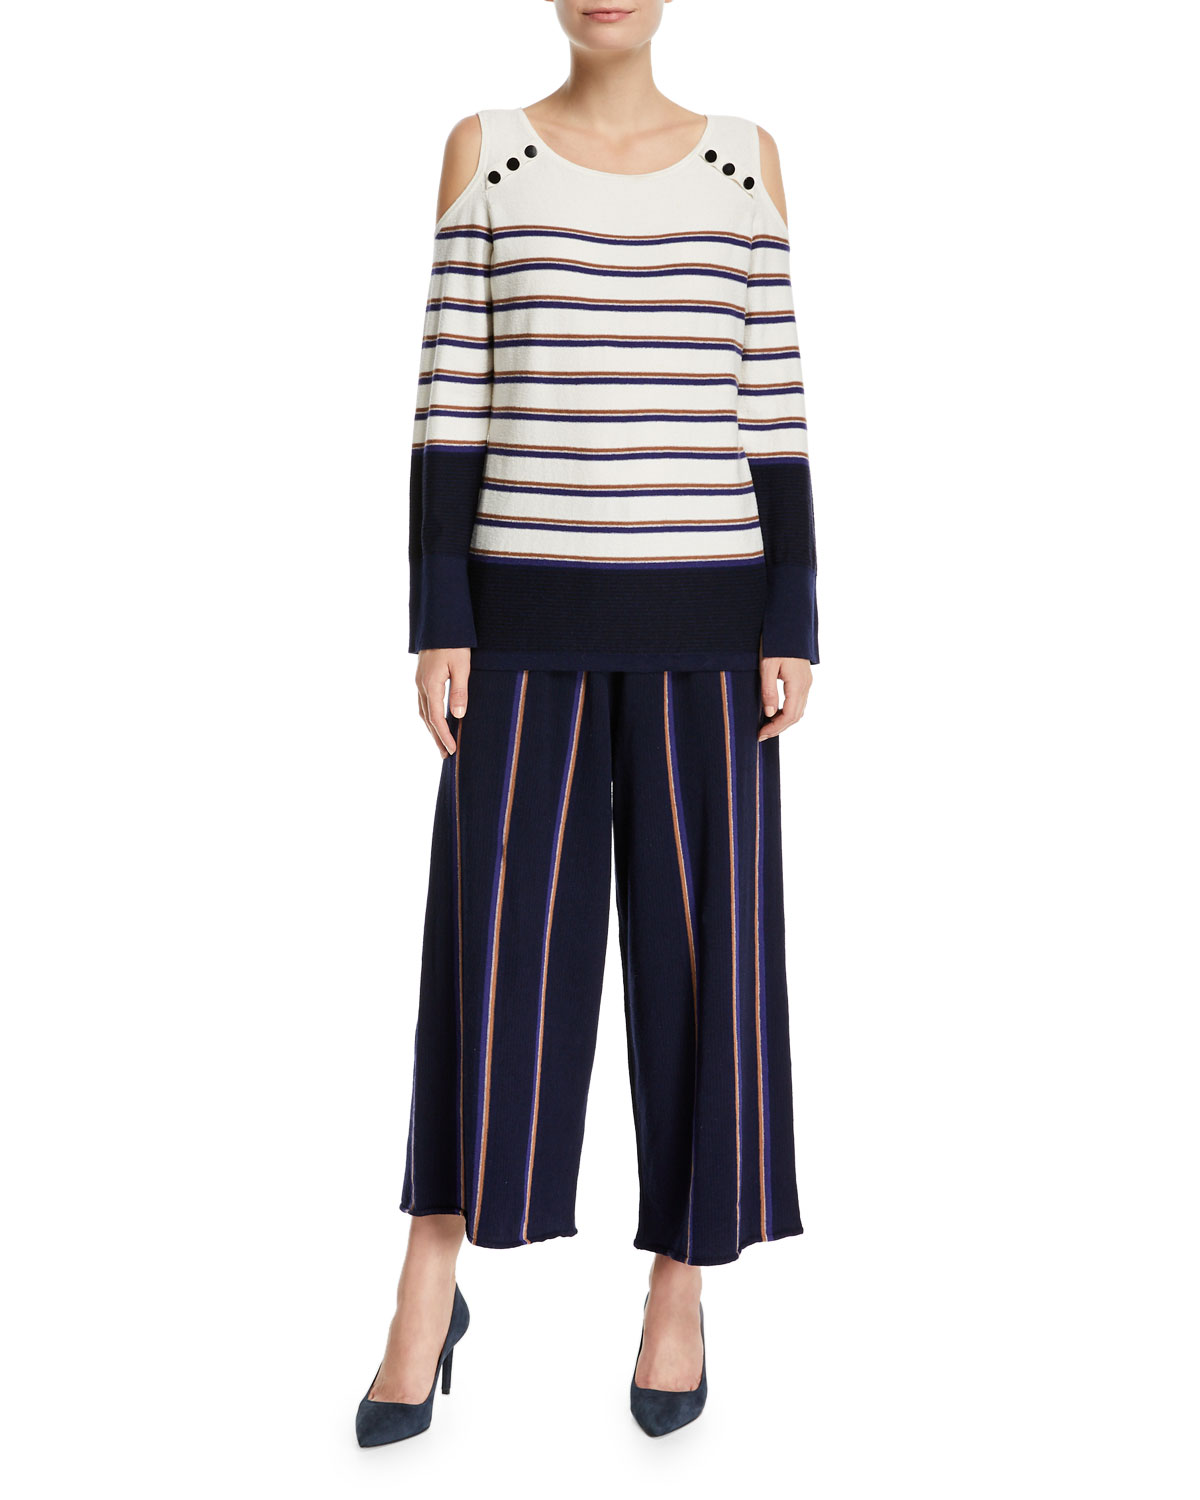 Spring Ahead Striped Top, Plus Size